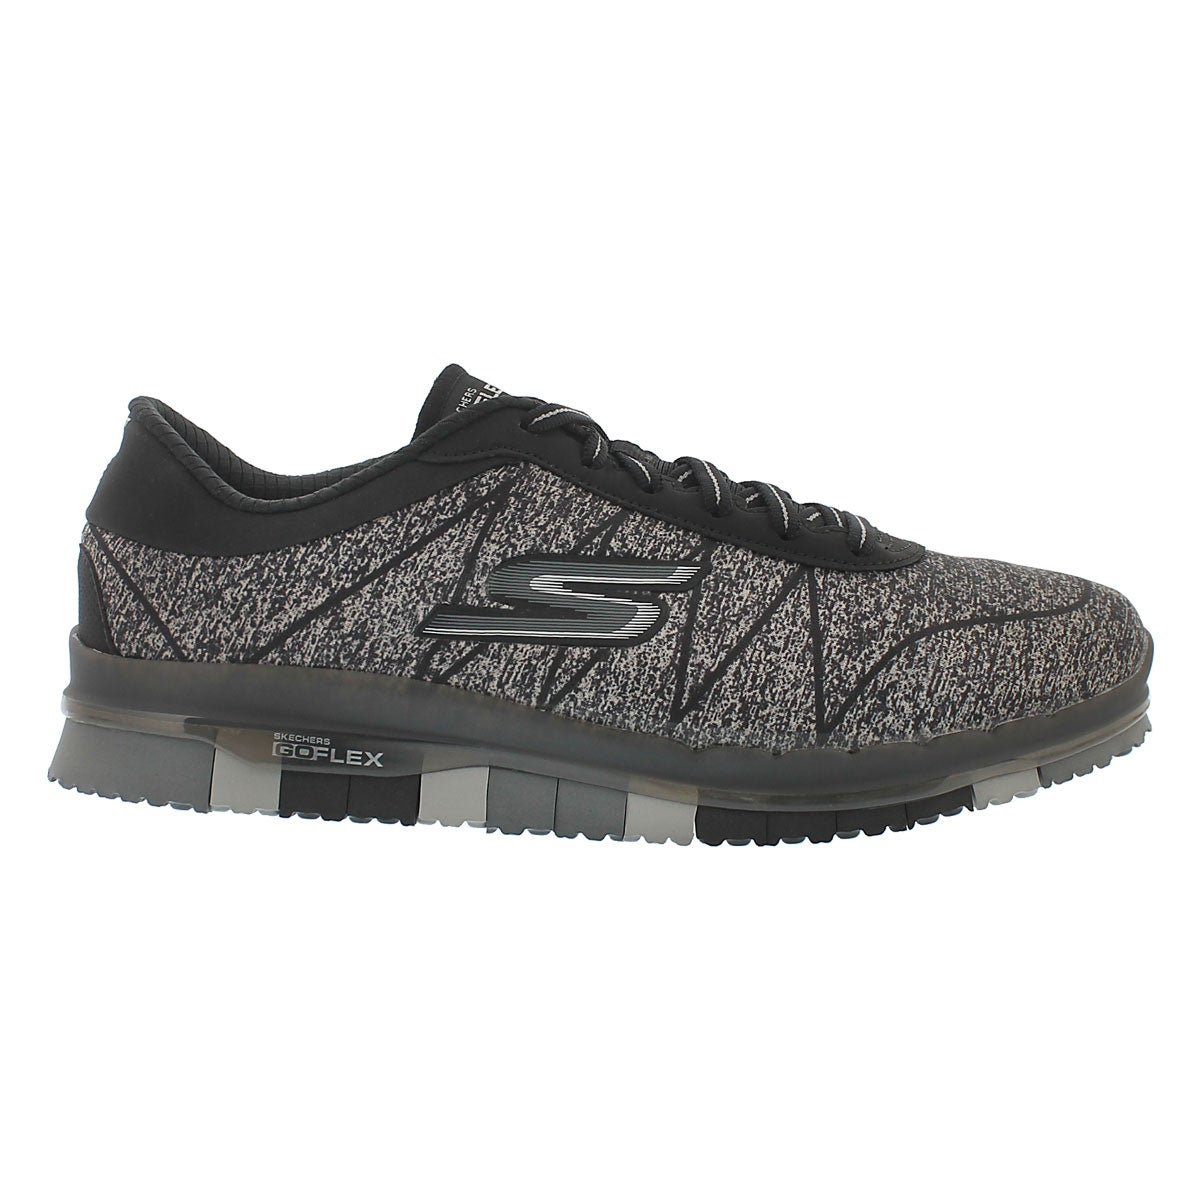 Lds Ability black lace up sneaker